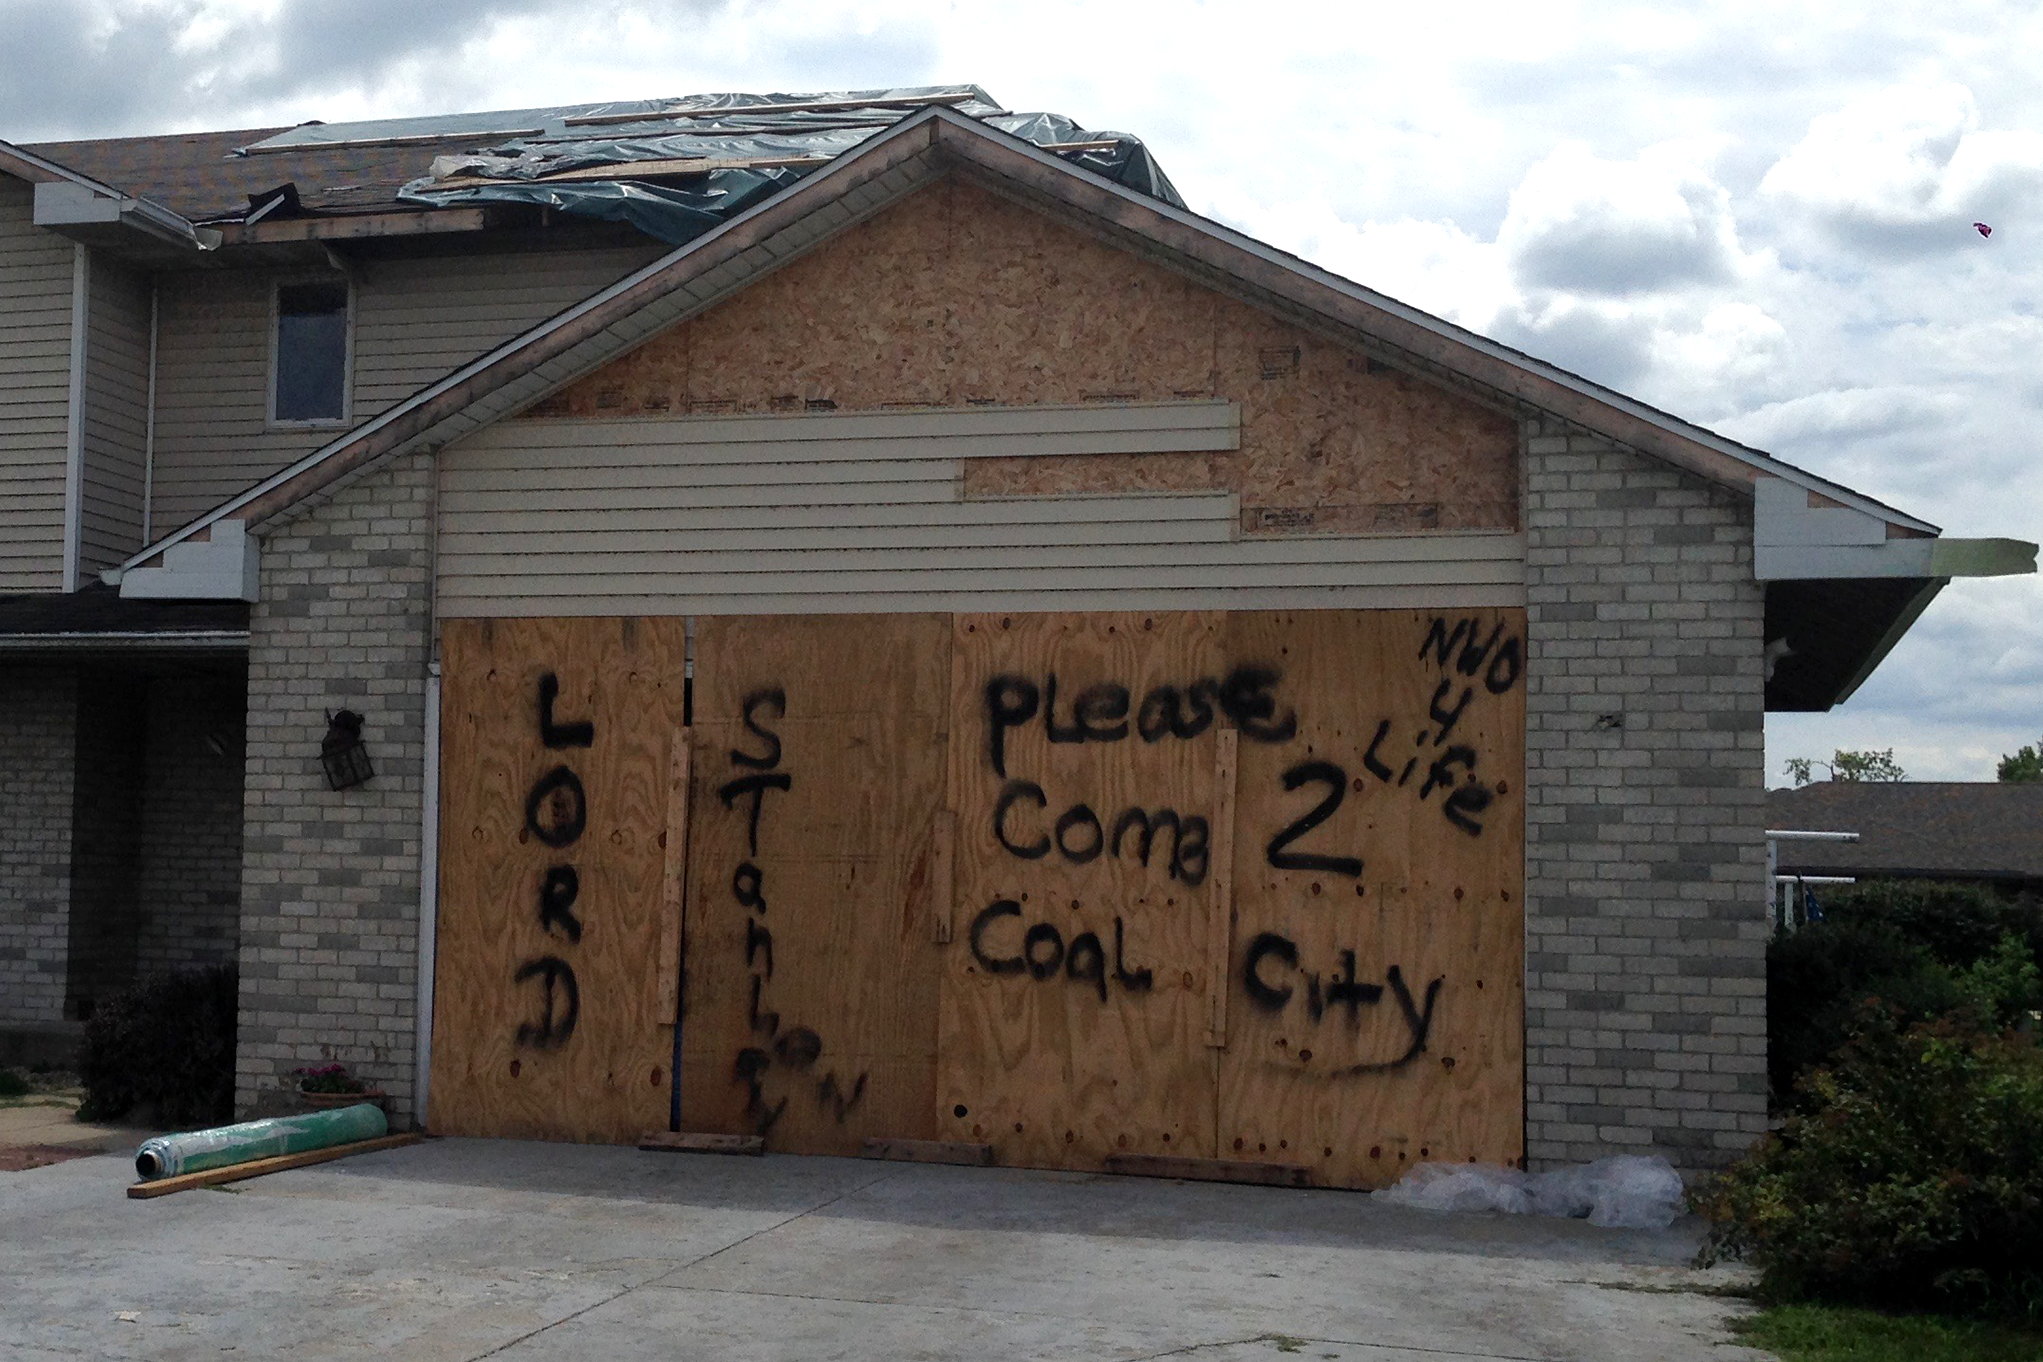 Reno Vognocchi's house after the tornado in 2015. His request: for the Stanley Cup to come to Coal City. (Yolanda Perdomo/WBEZ)